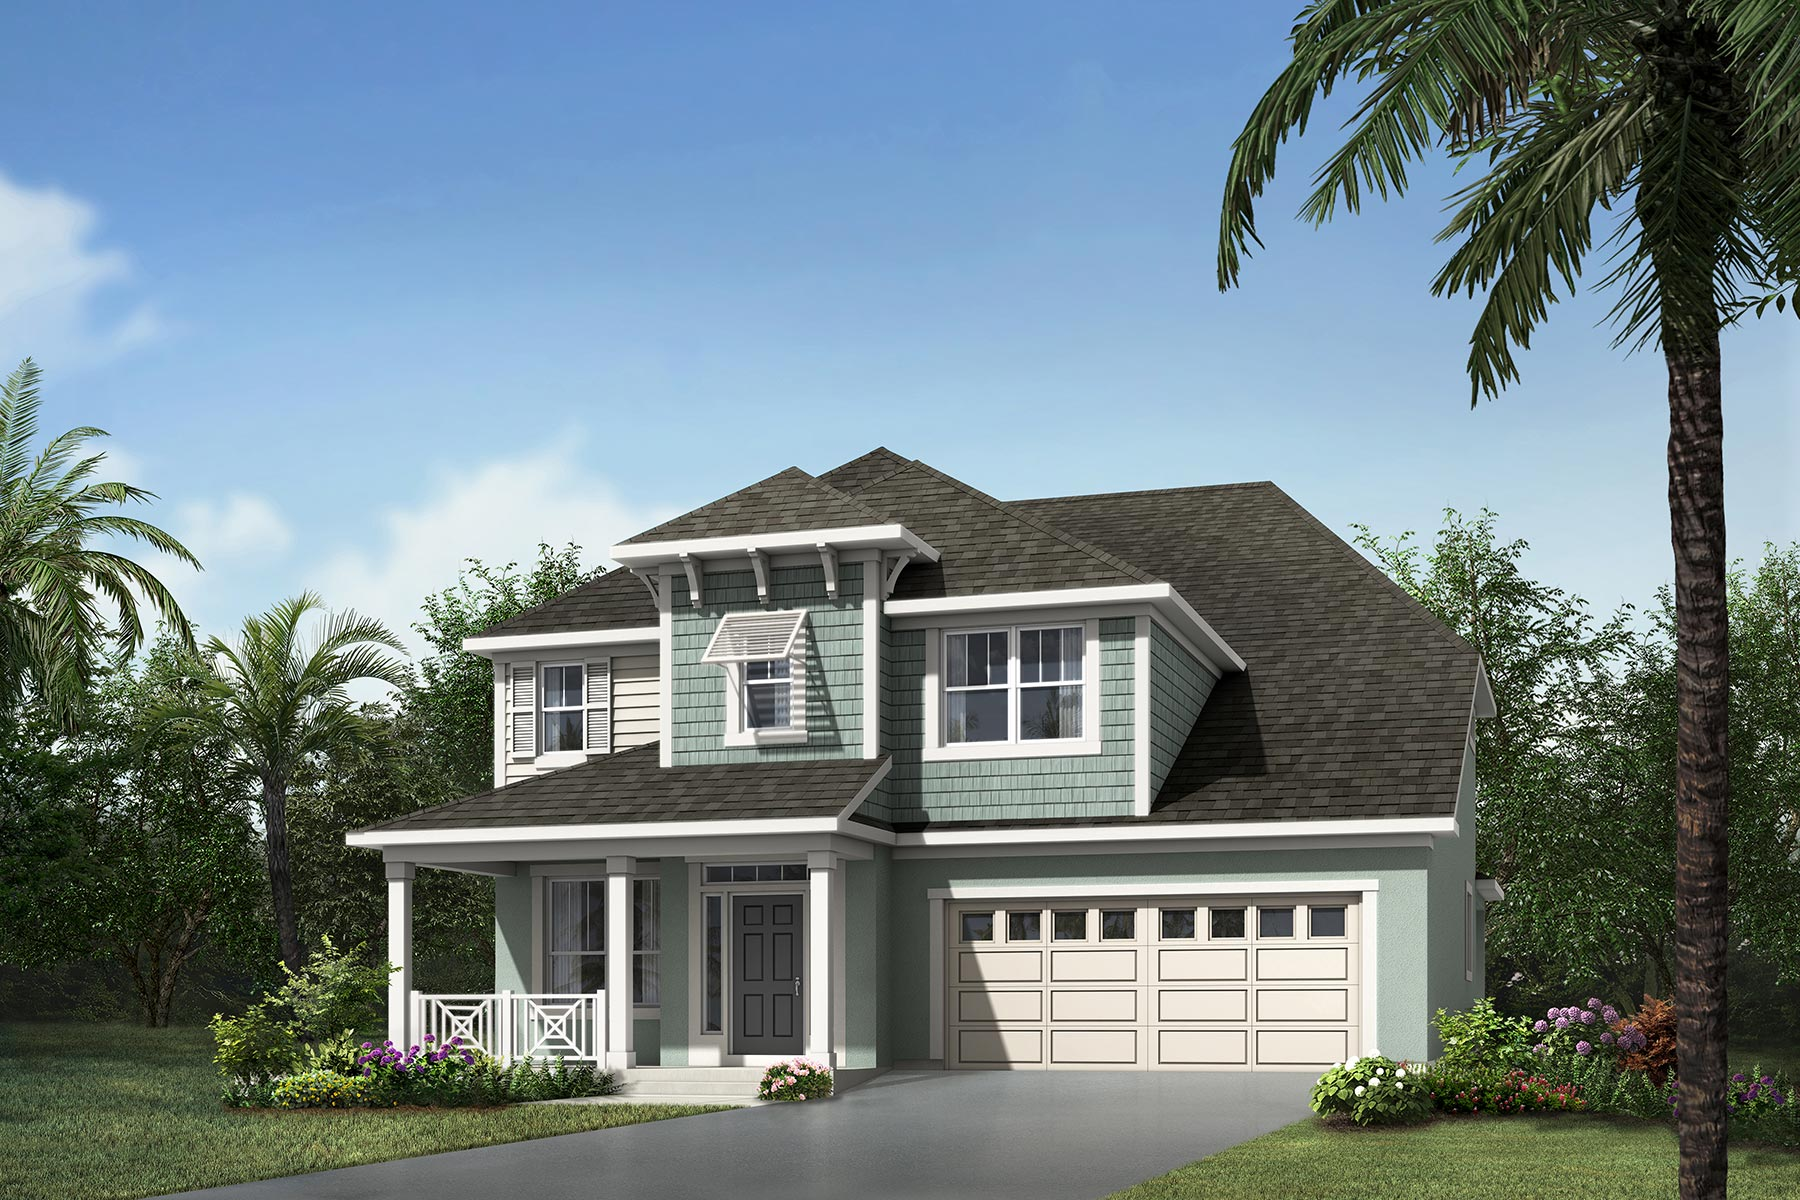 Jasmine Plan Elevation Front at Meridian Parks in Orlando Florida by Mattamy Homes